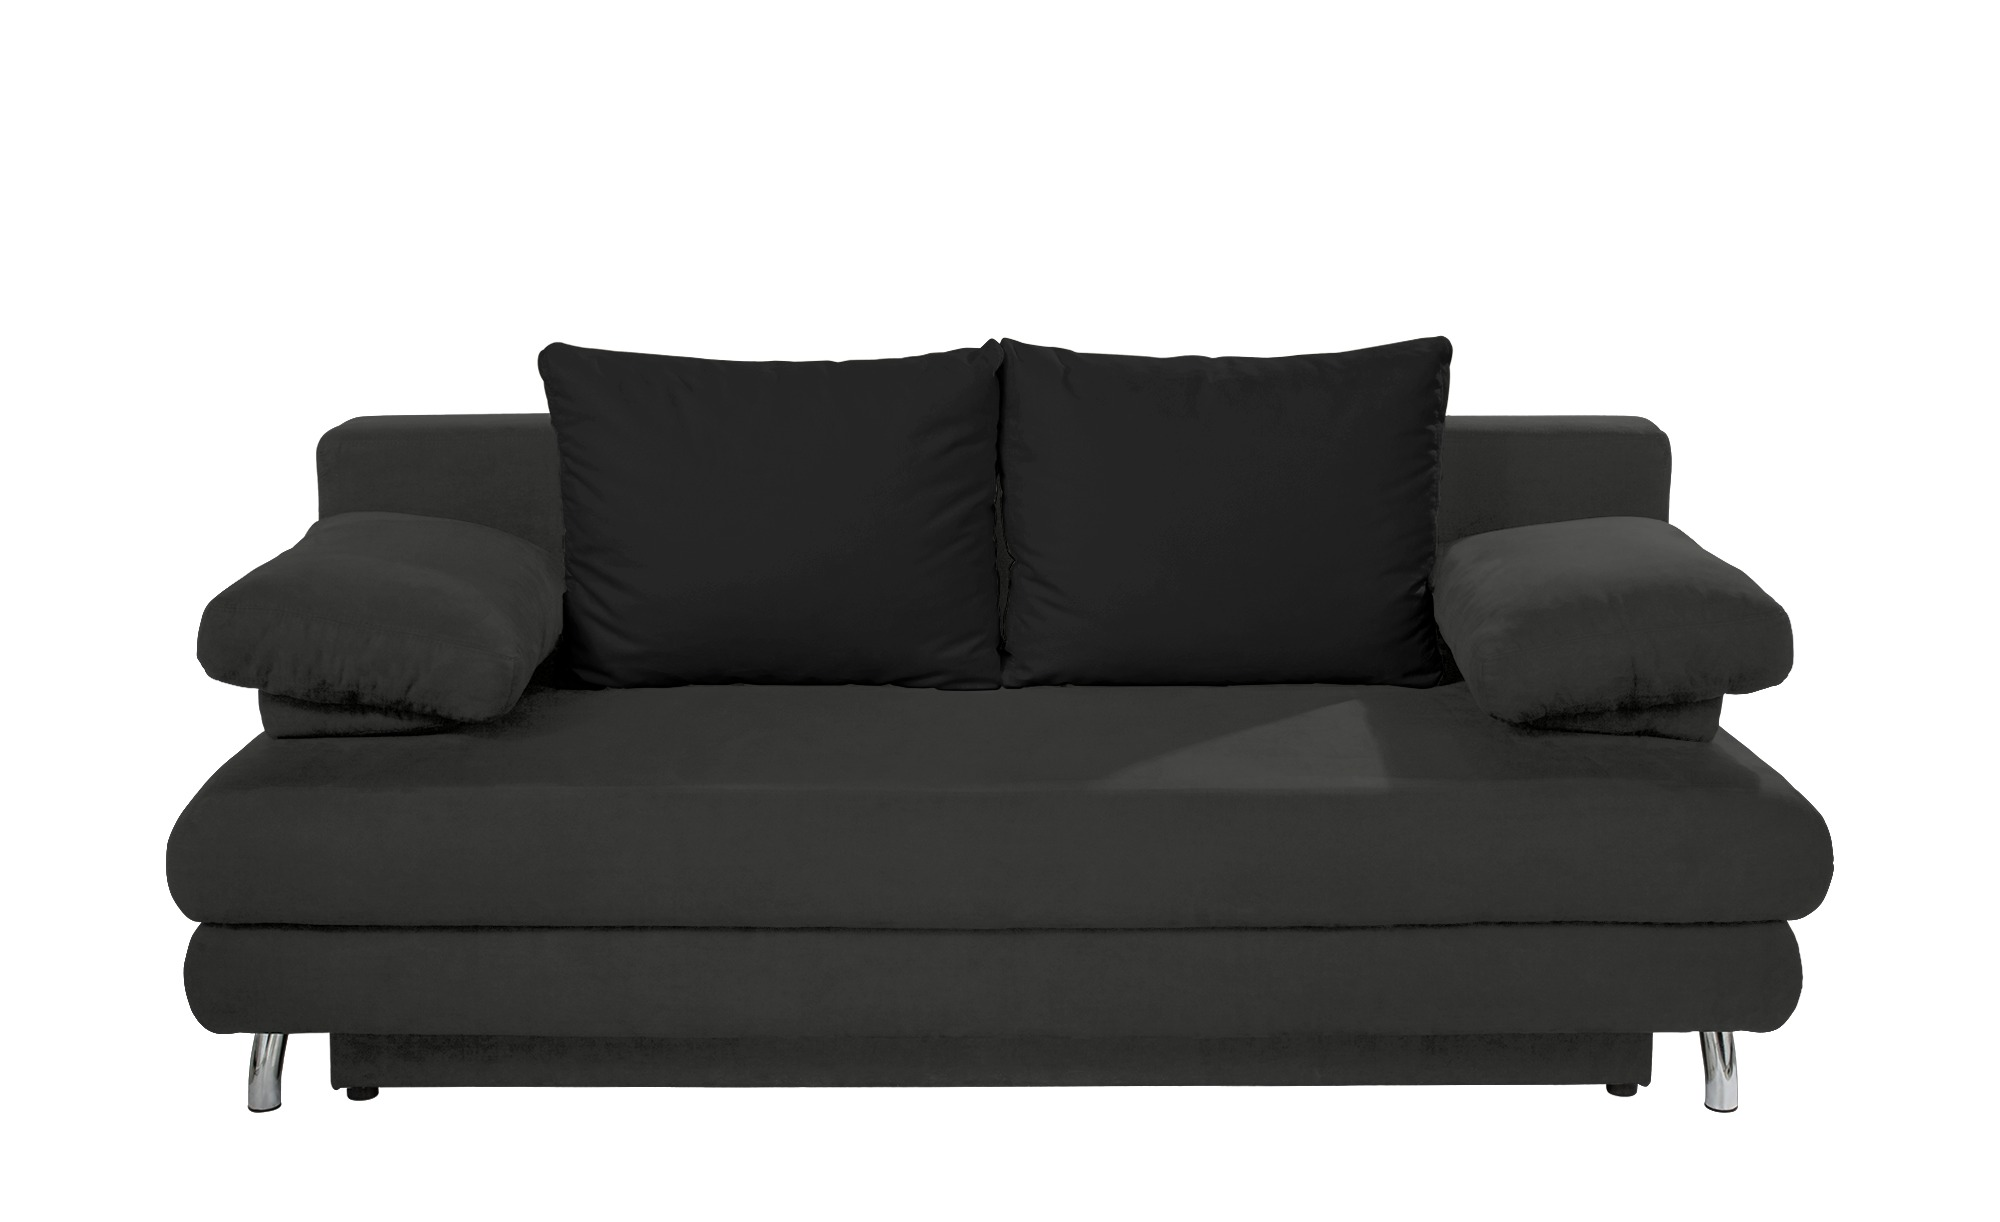 schlafsofa calina breite 205 cm h he 80 cm schwarz online kaufen bei woonio. Black Bedroom Furniture Sets. Home Design Ideas